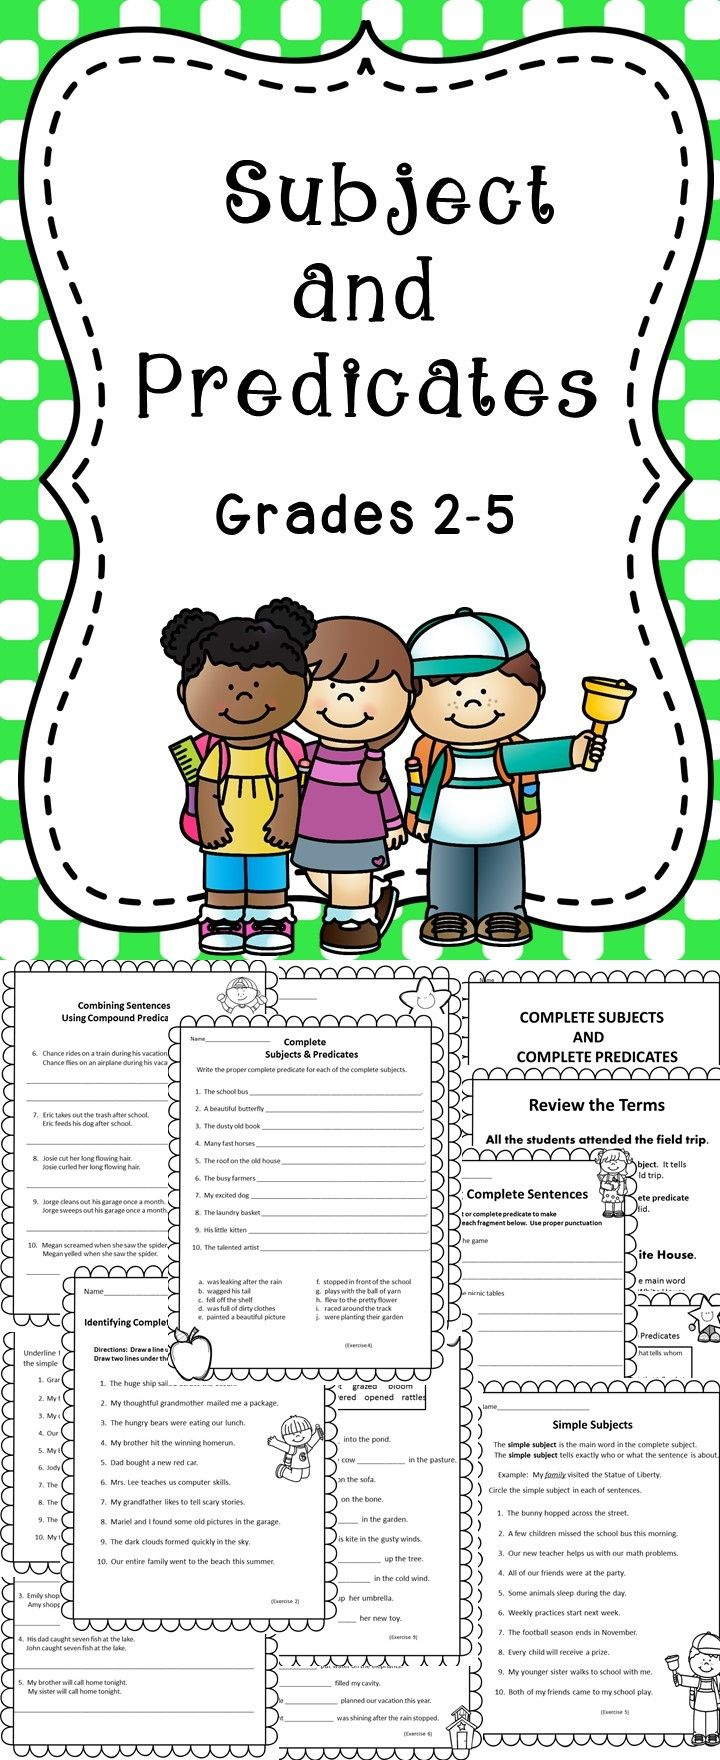 Subjects and Predicates - This activity pack includes a variety of educational activities to use when teaching elementary students about subjects and predicates.